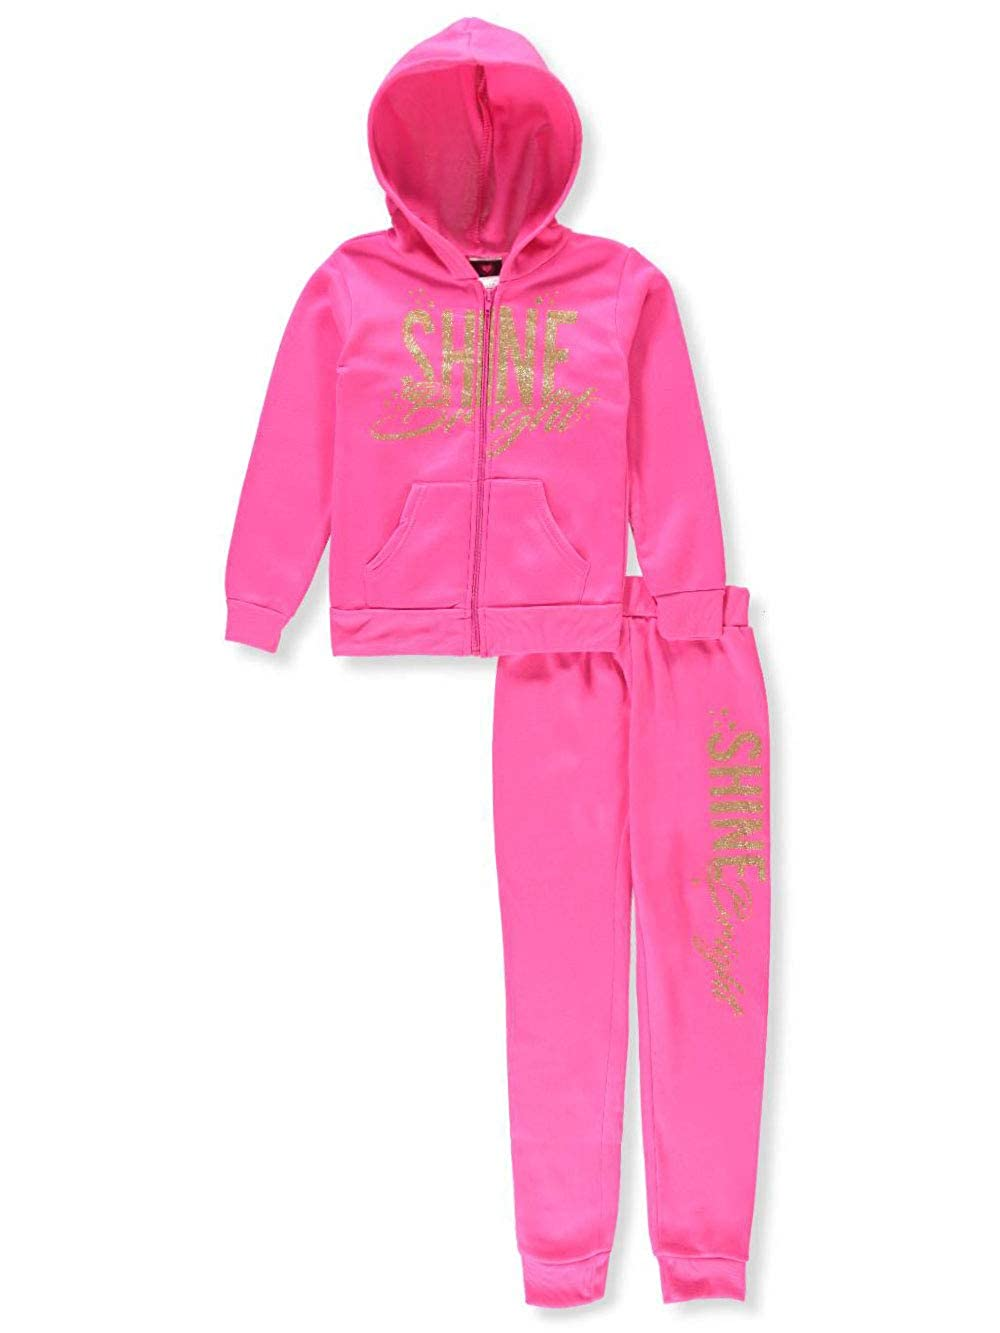 Diva Girls' 2-Piece Sweatsuit Pants Set